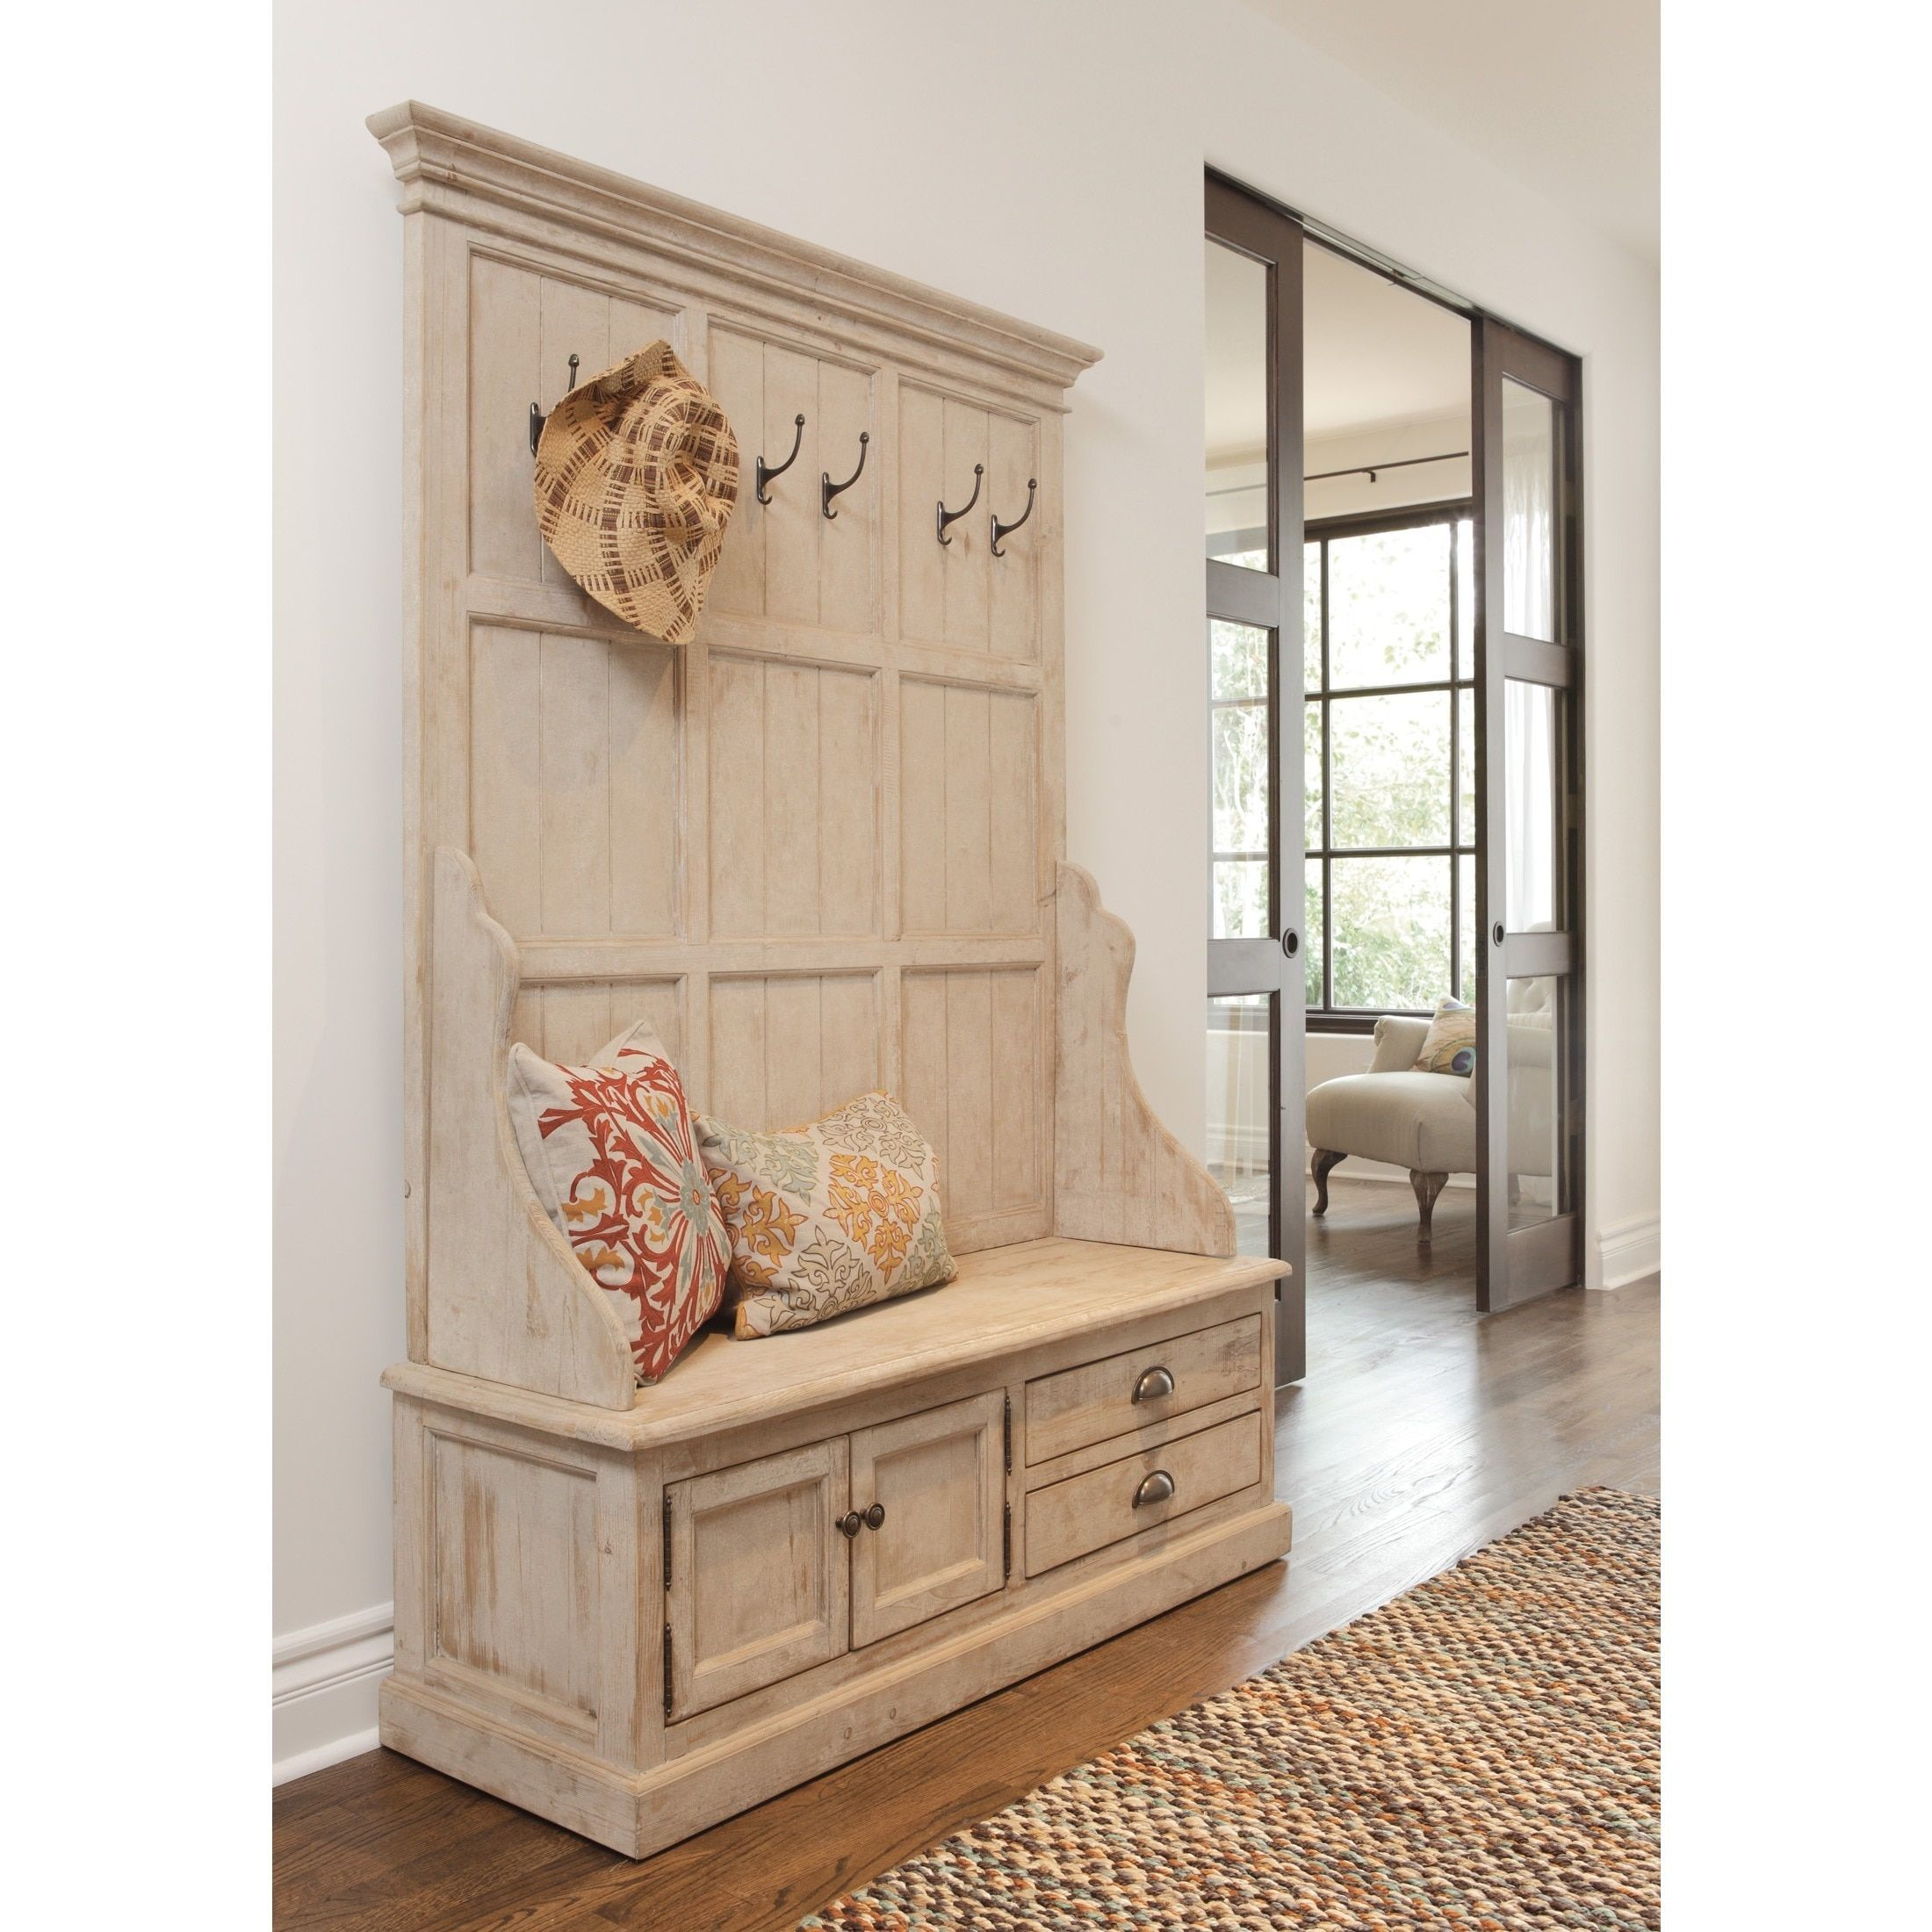 entry way storage of hooks lara pinterest with entryway elegant bench